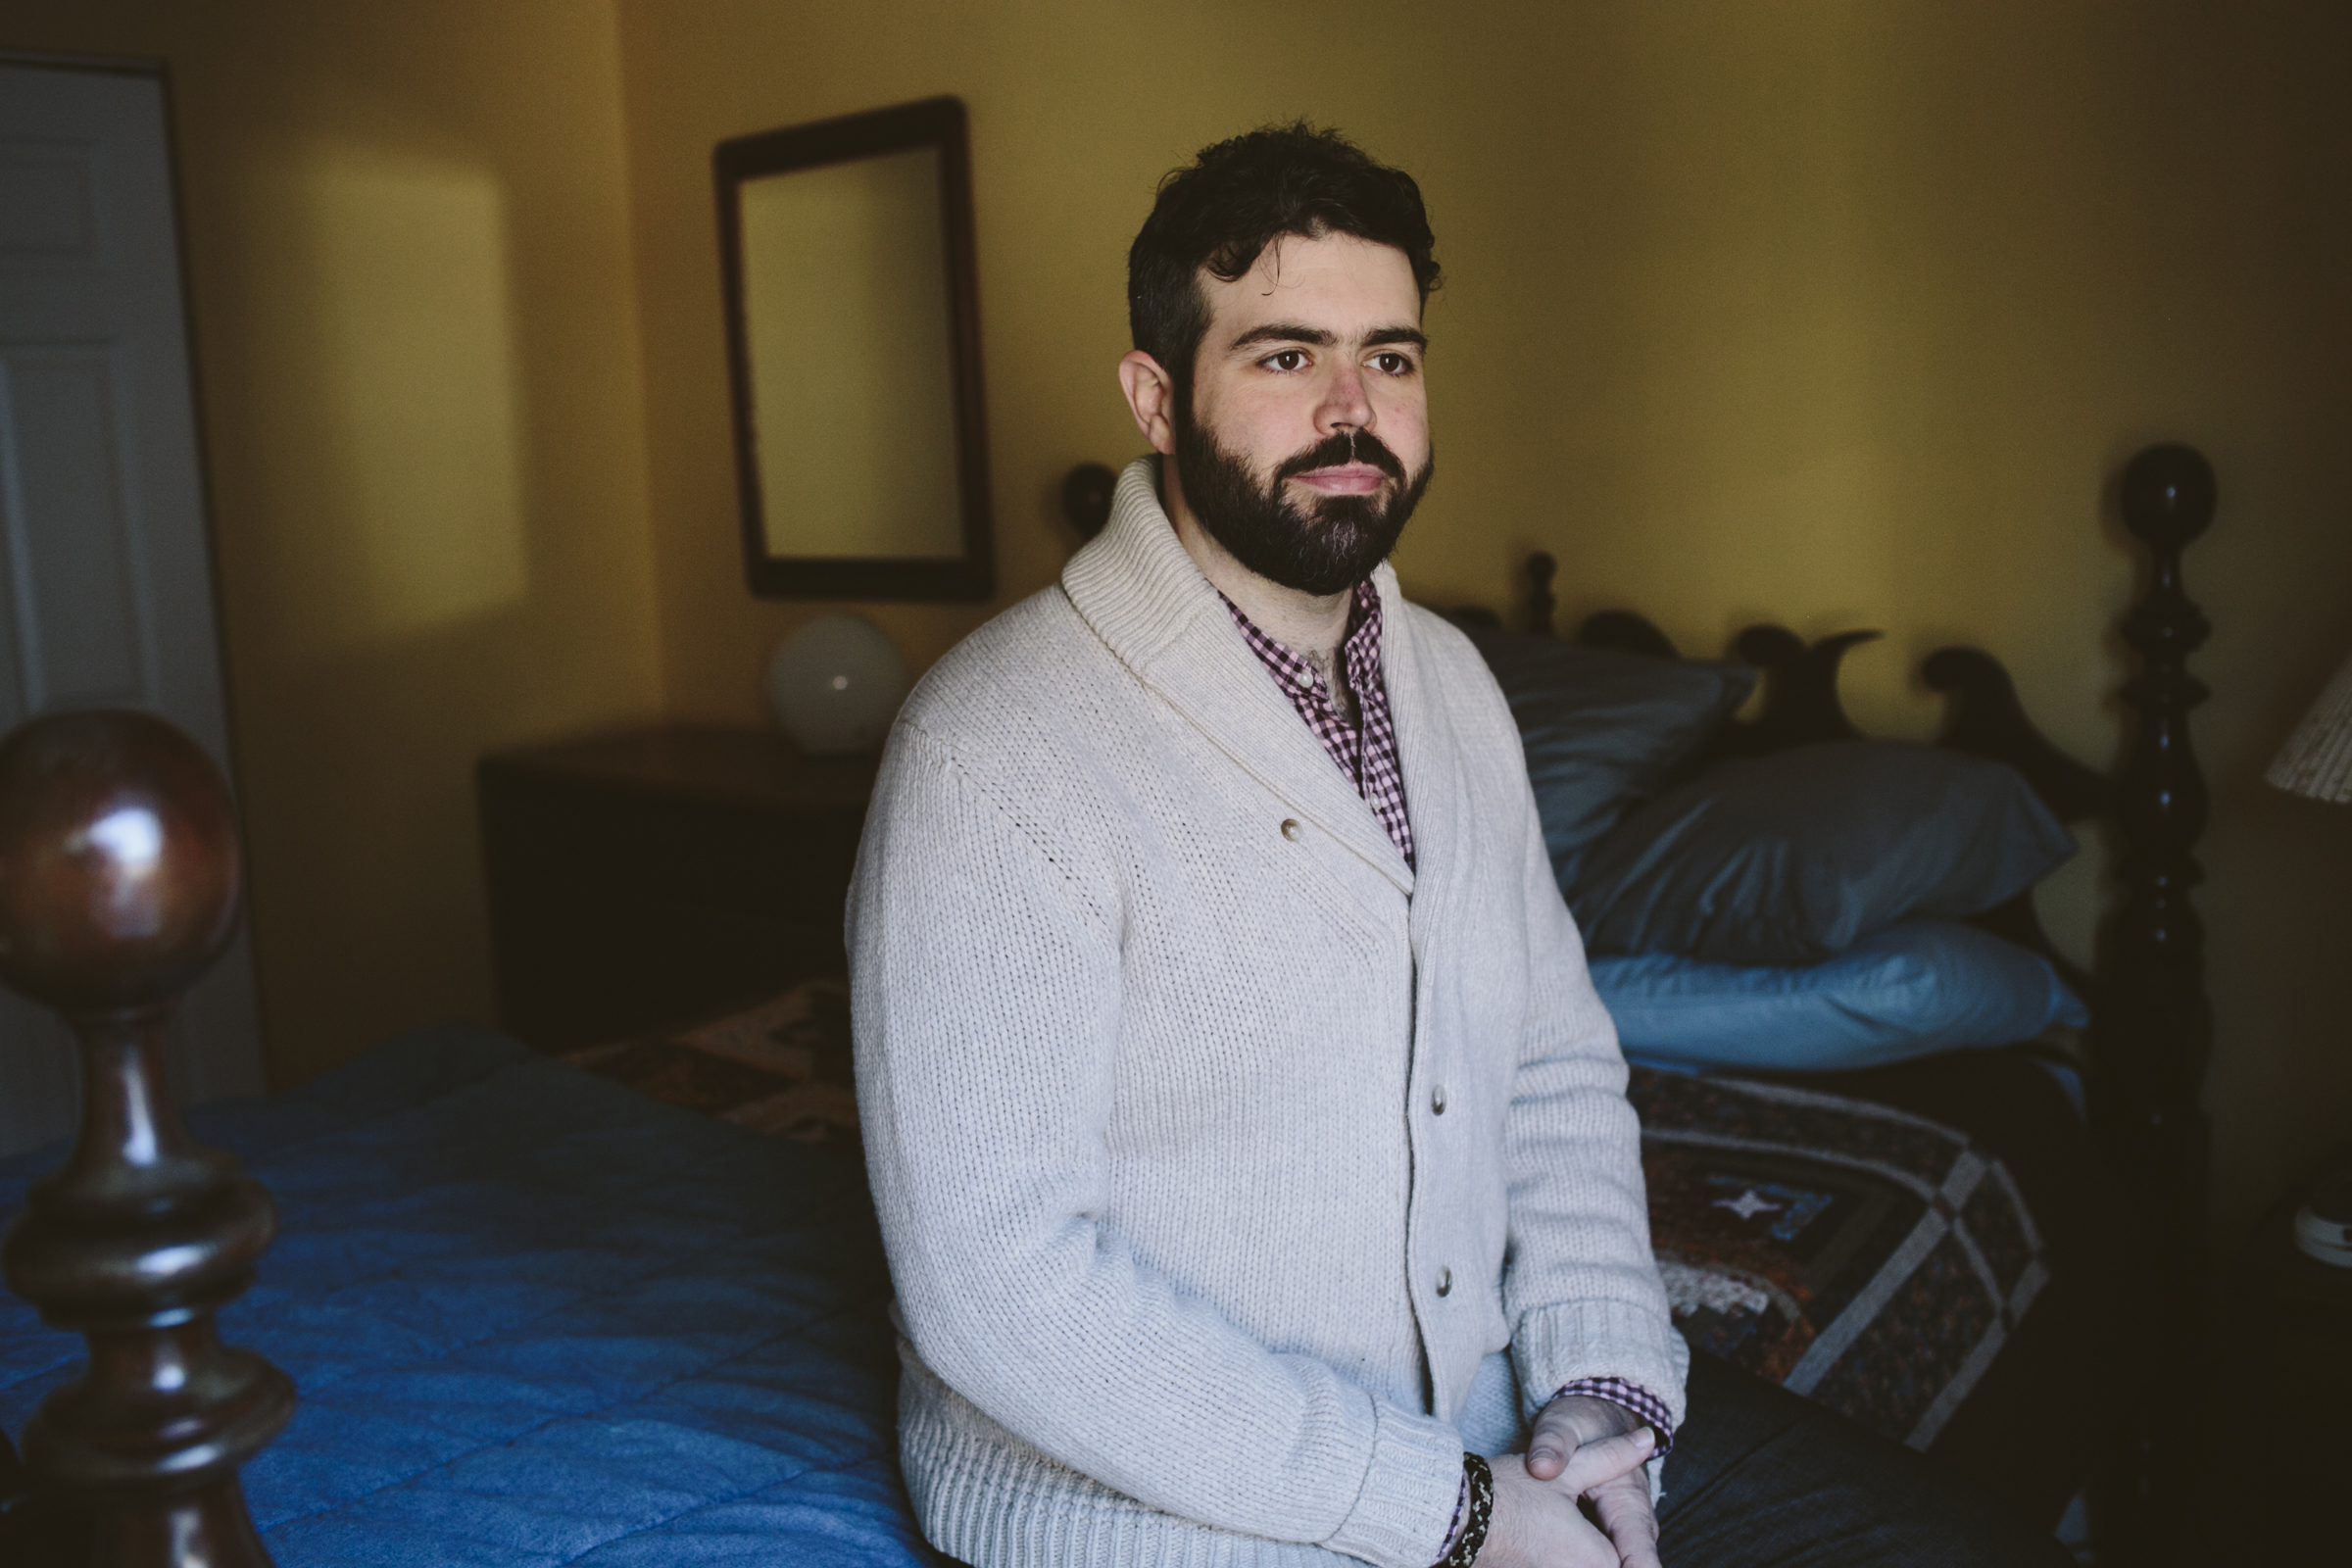 Enbrel, an arthritis medication, helps Kip Burgess get out of the bed in the morning, but the high monthly cost forced him this year to raid his savings to meet his deductible. (Kristen Norman for KHN)